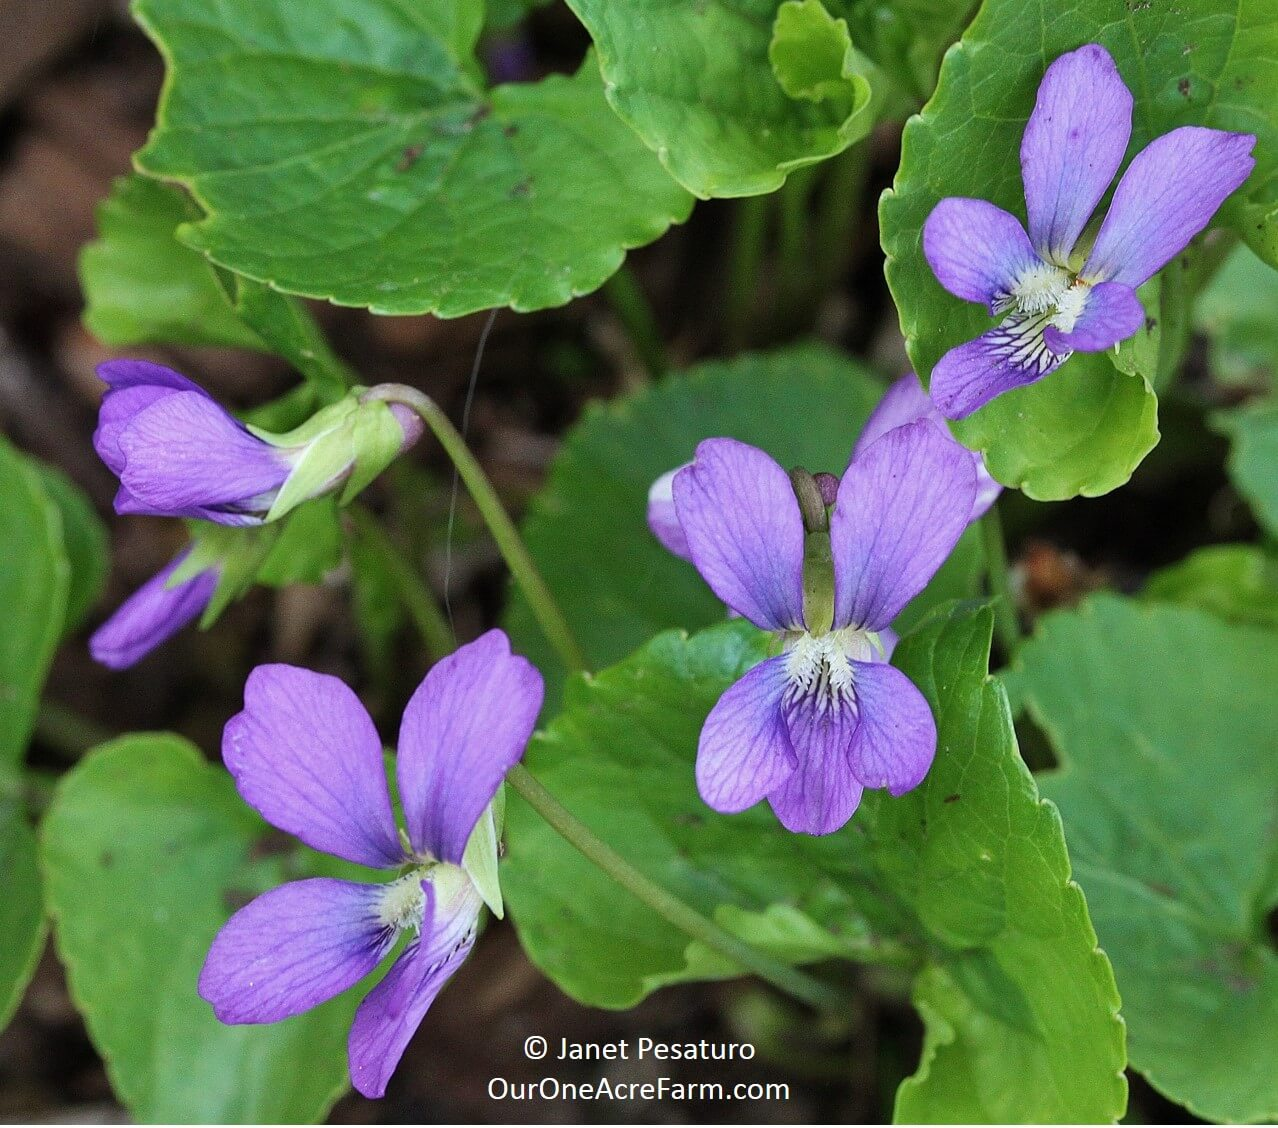 Plants Native To Florida: 12 Native Plants For Food And Medicine